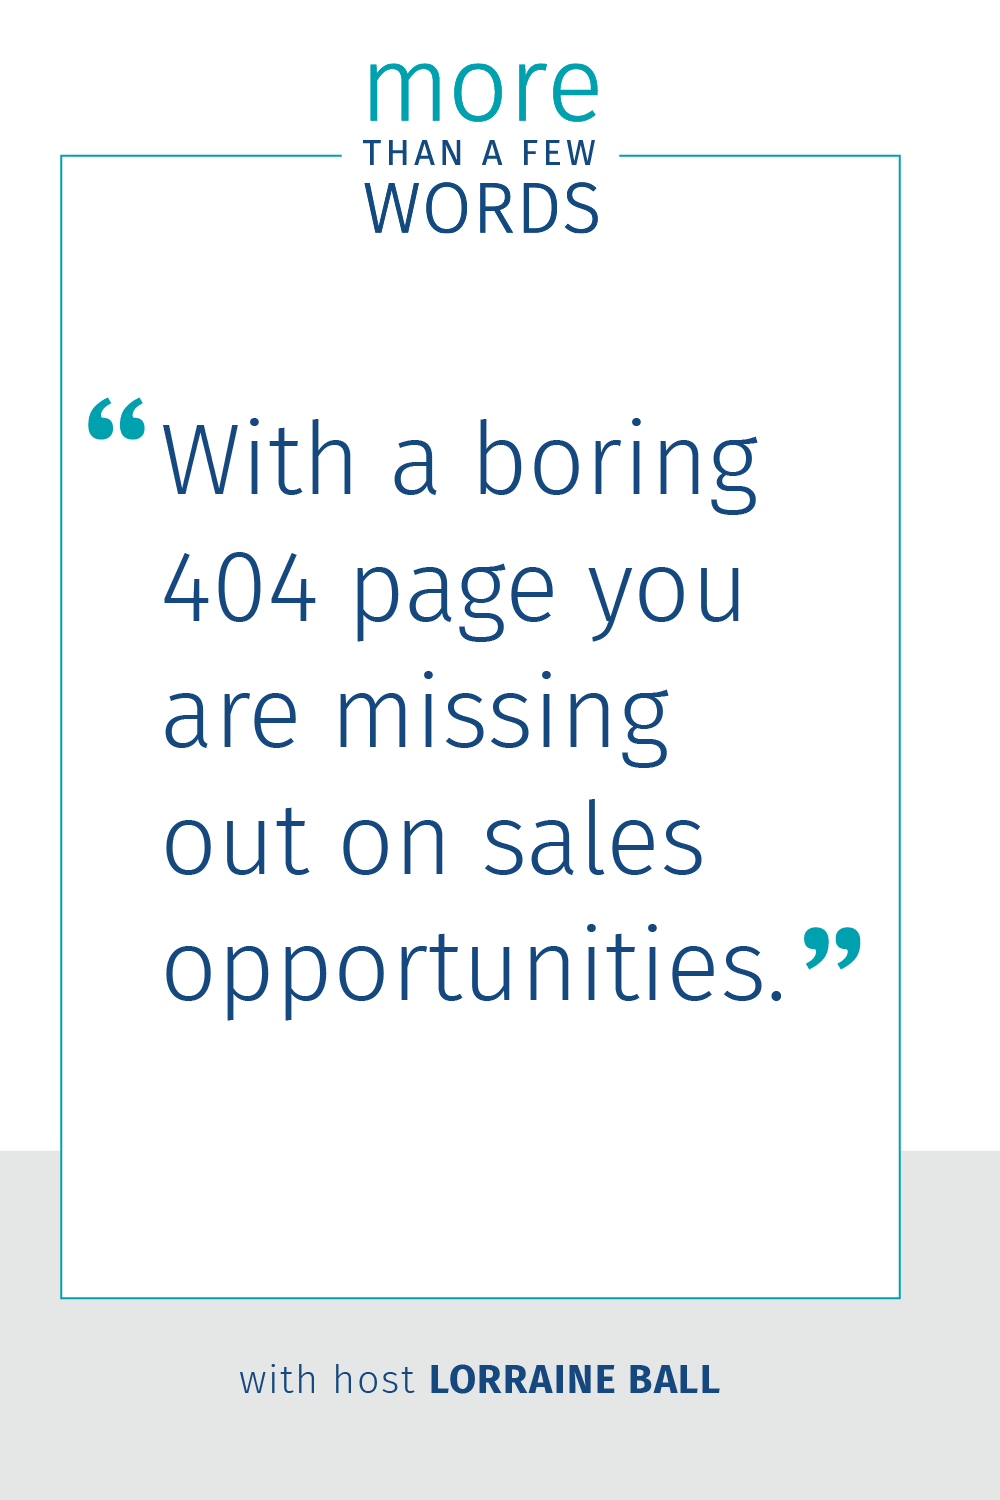 Engage visitors with an interesting 404 page